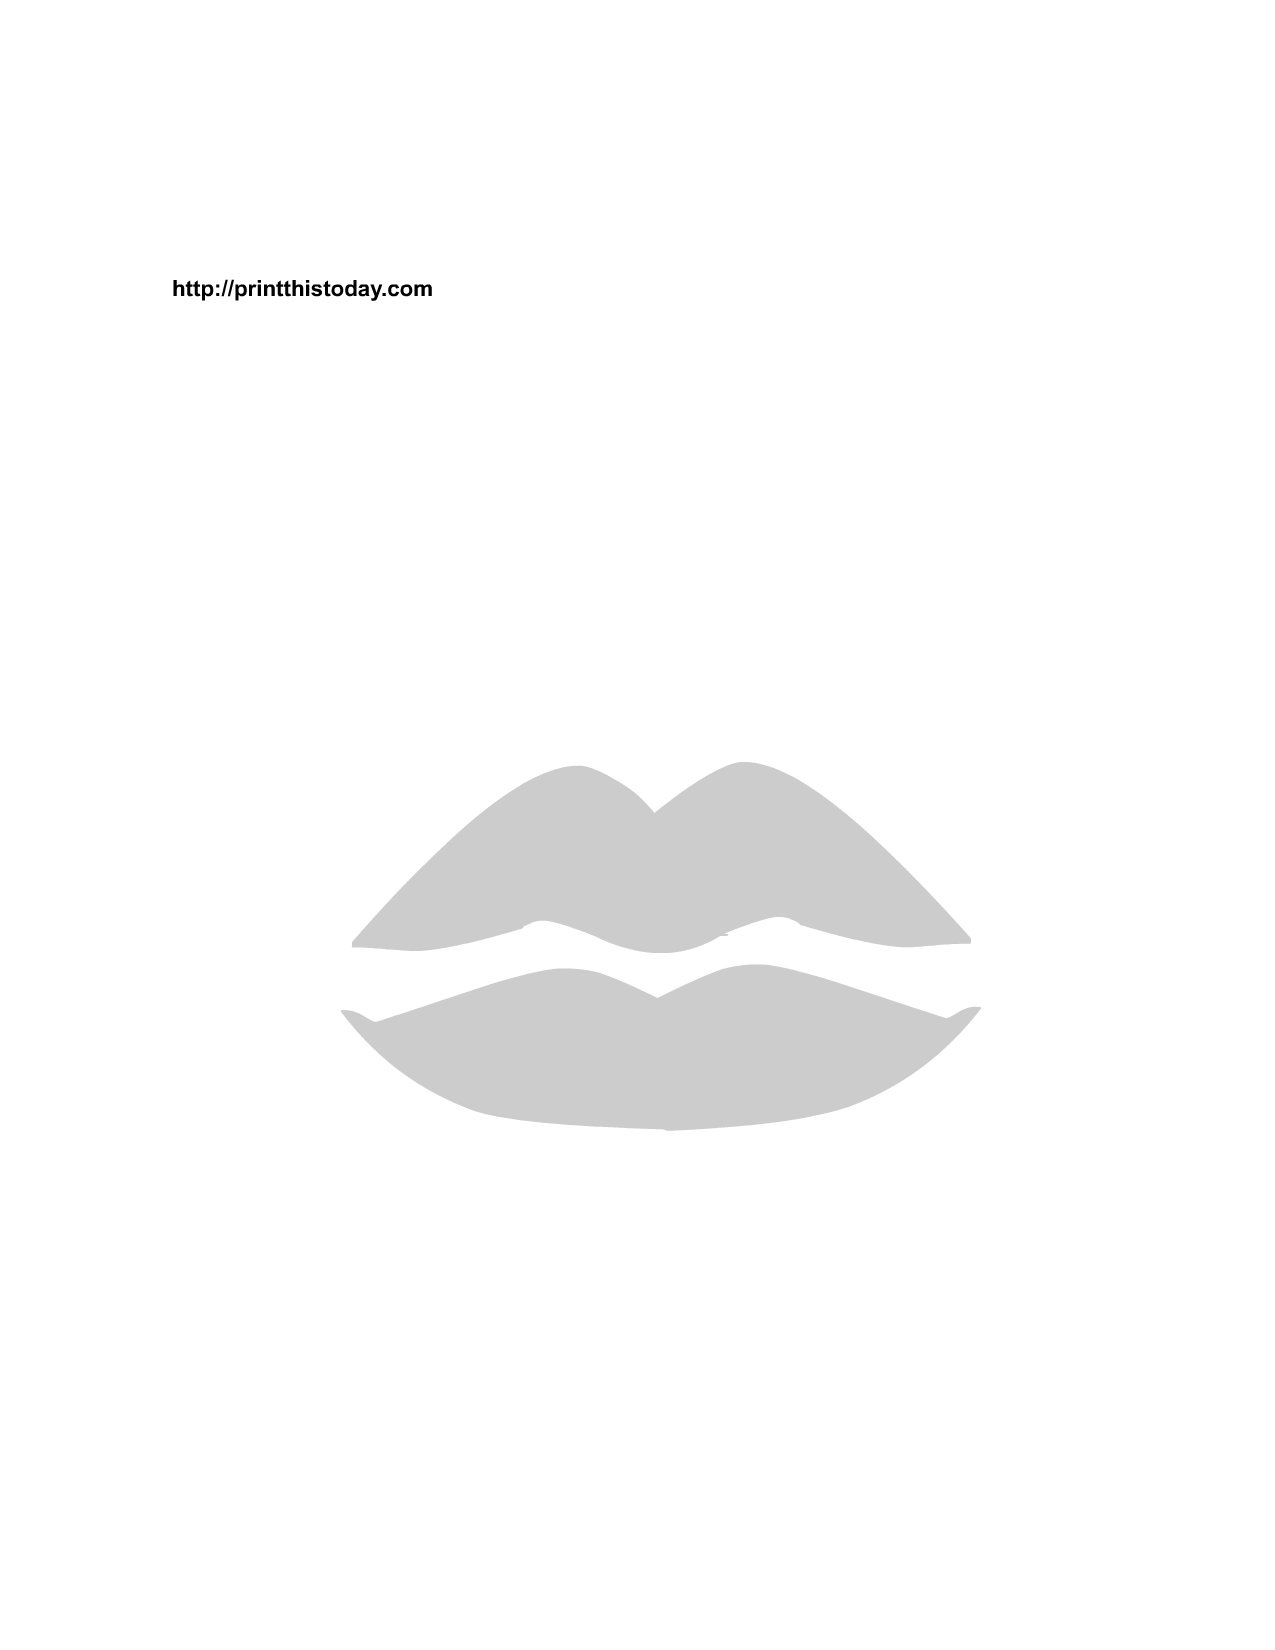 picture about Lip Stencil Printable named Printable Valentine Stencils